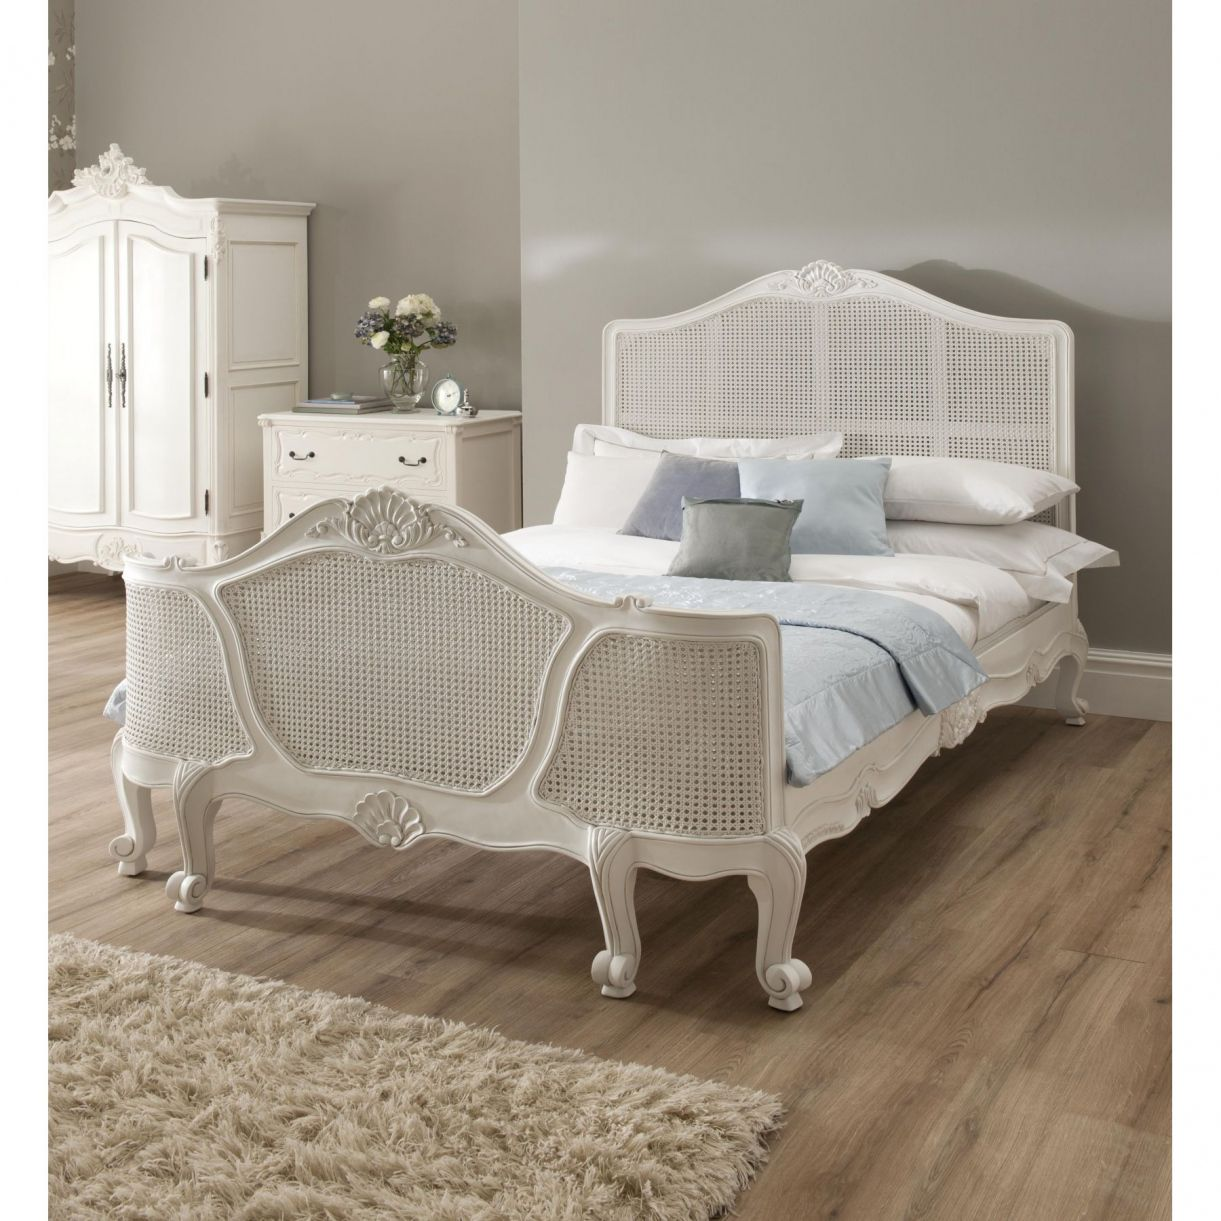 White Wicker Bedroom Furniture For Sale  Interior Design Bedroom Extraordinary Bedroom Furniture On Sale 2018